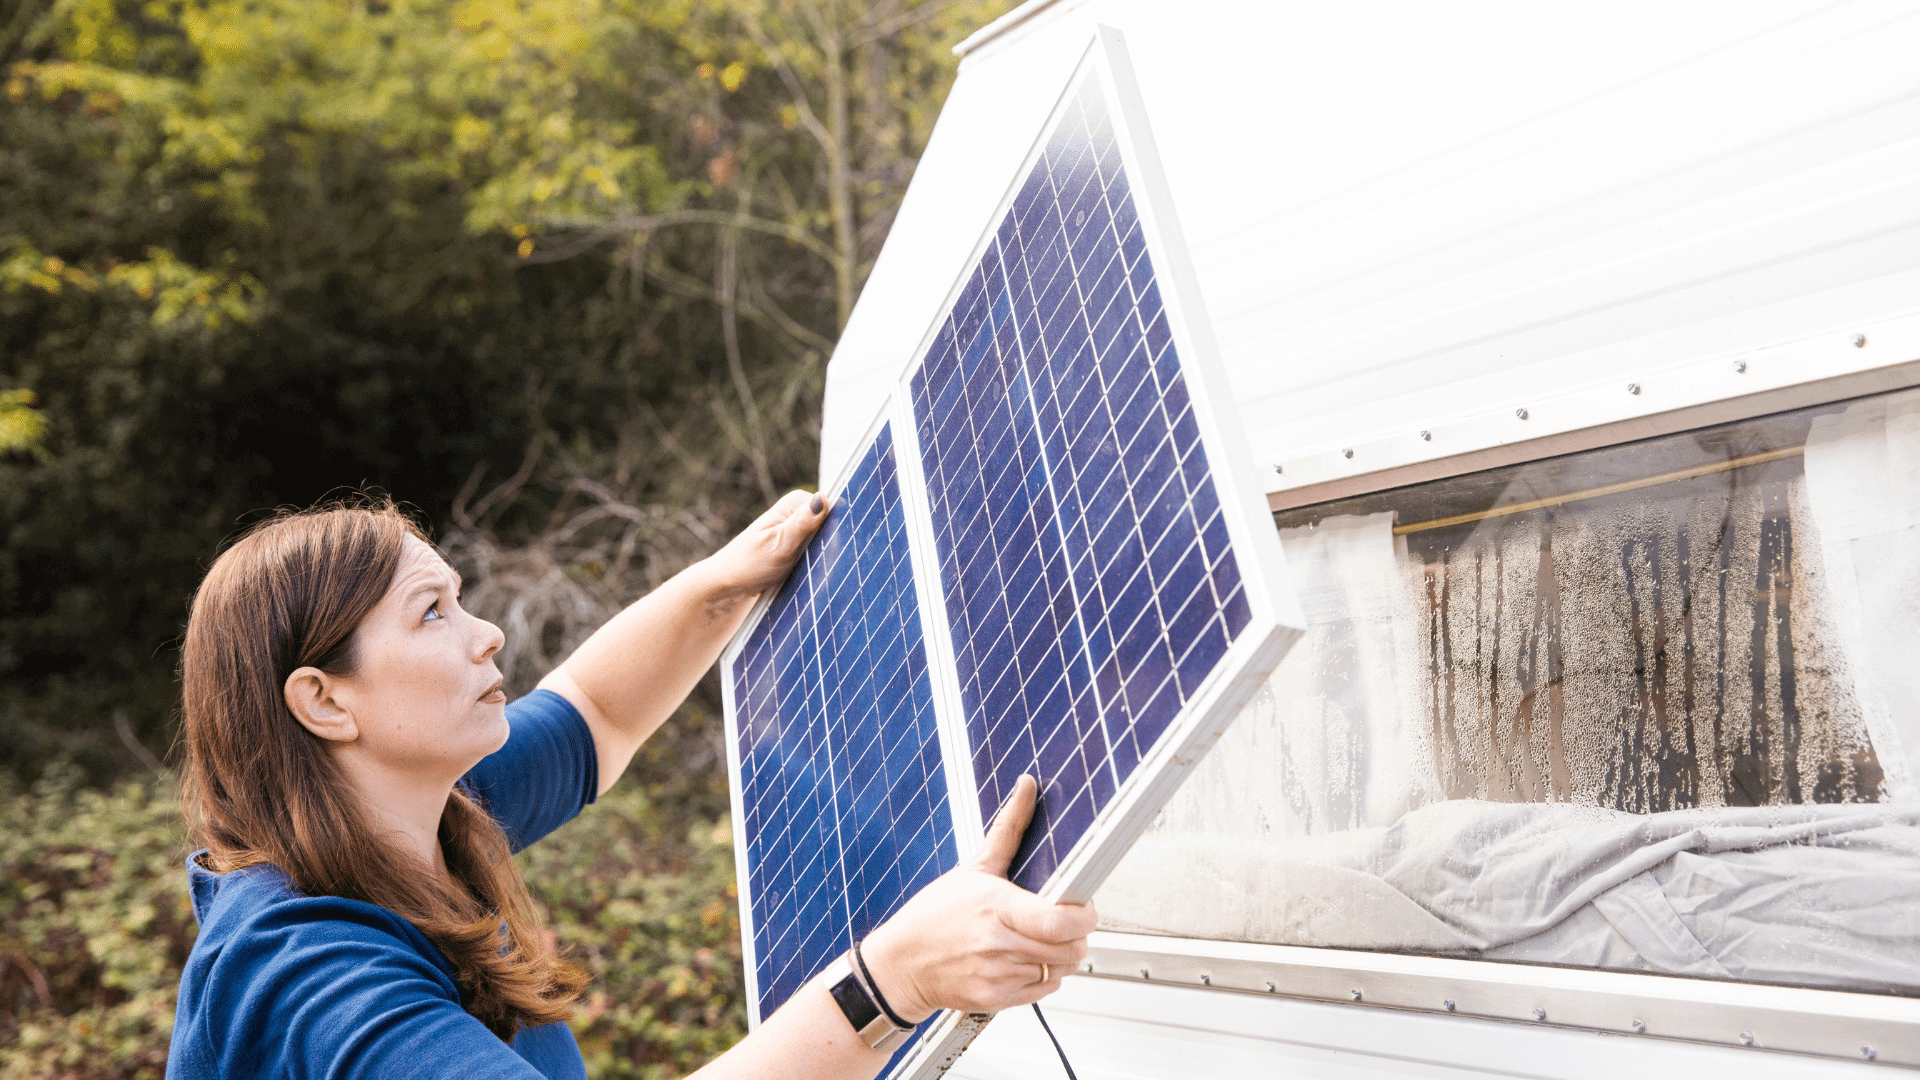 Woman with dark hair and blue shirt looks kinda confused as she attempts to install a solar panel on her RV. Her RV has dirty windows, but I don't think that's her main concern. She is likely installing the solar panel so she can power her RV's appliances and air conditioner.